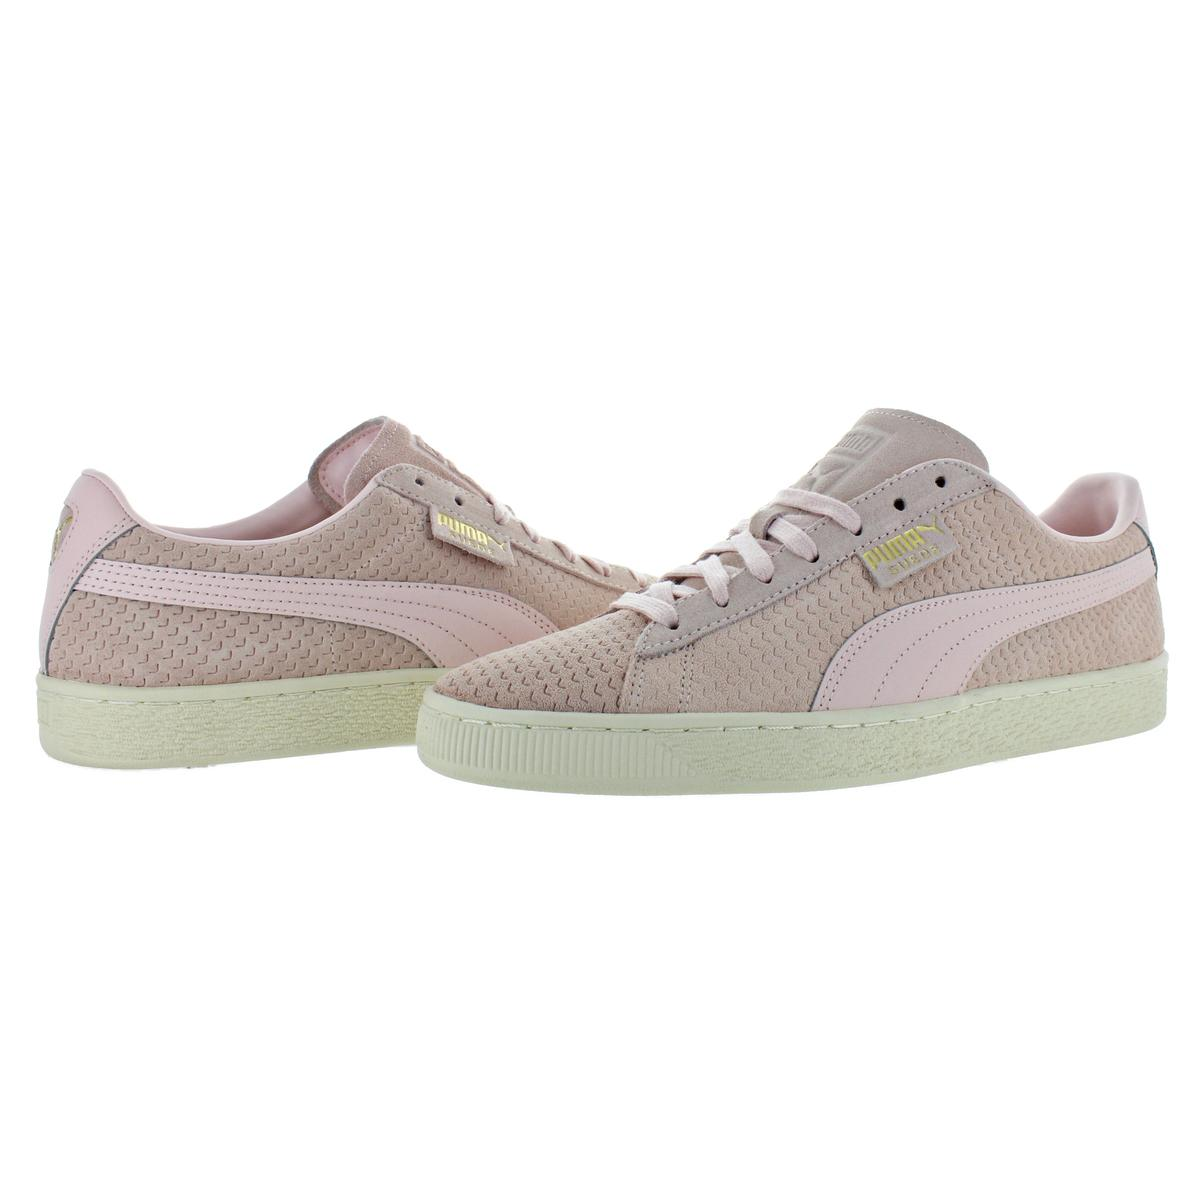 Puma-Suede-Classic-Men-039-s-Fashion-Sneakers-Shoes thumbnail 34